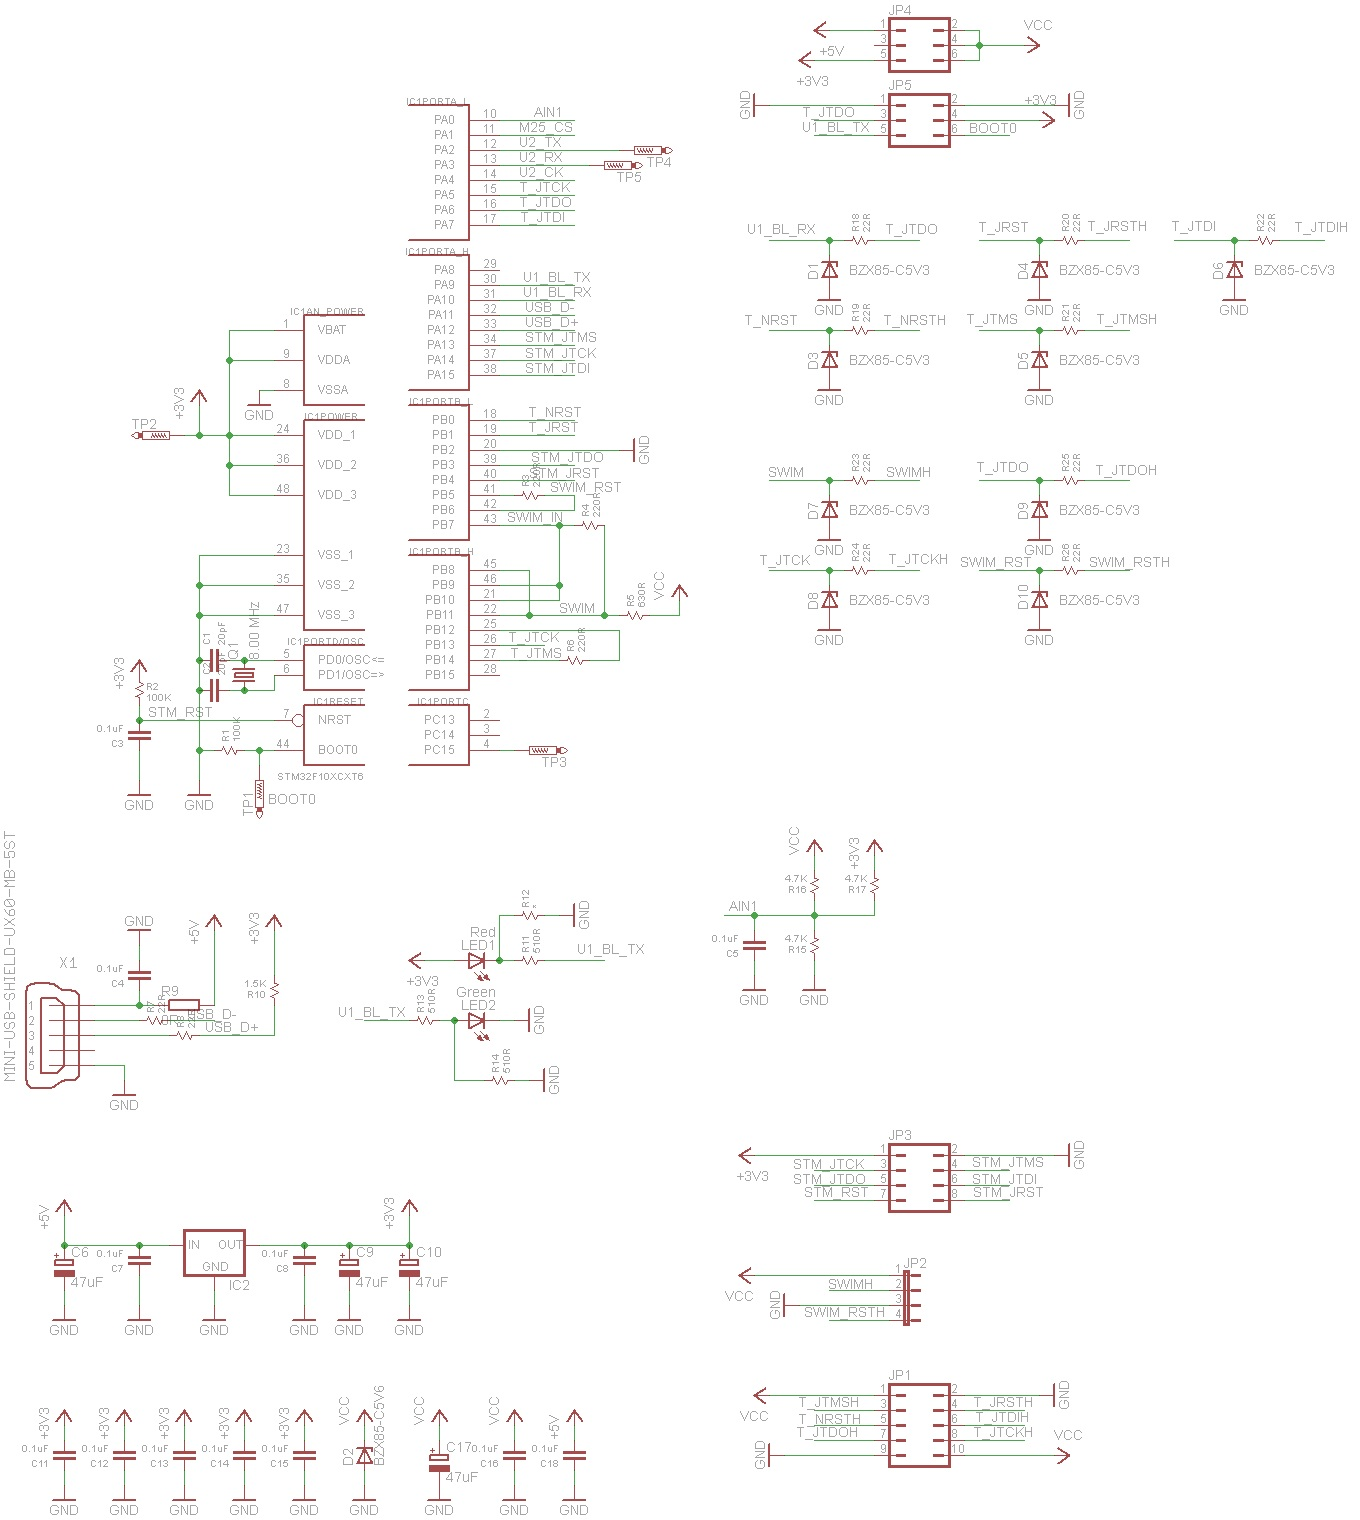 Diy St Link V2 Goodies Schematic Hex Pcb According To It I Created My Own In Eagle Cad